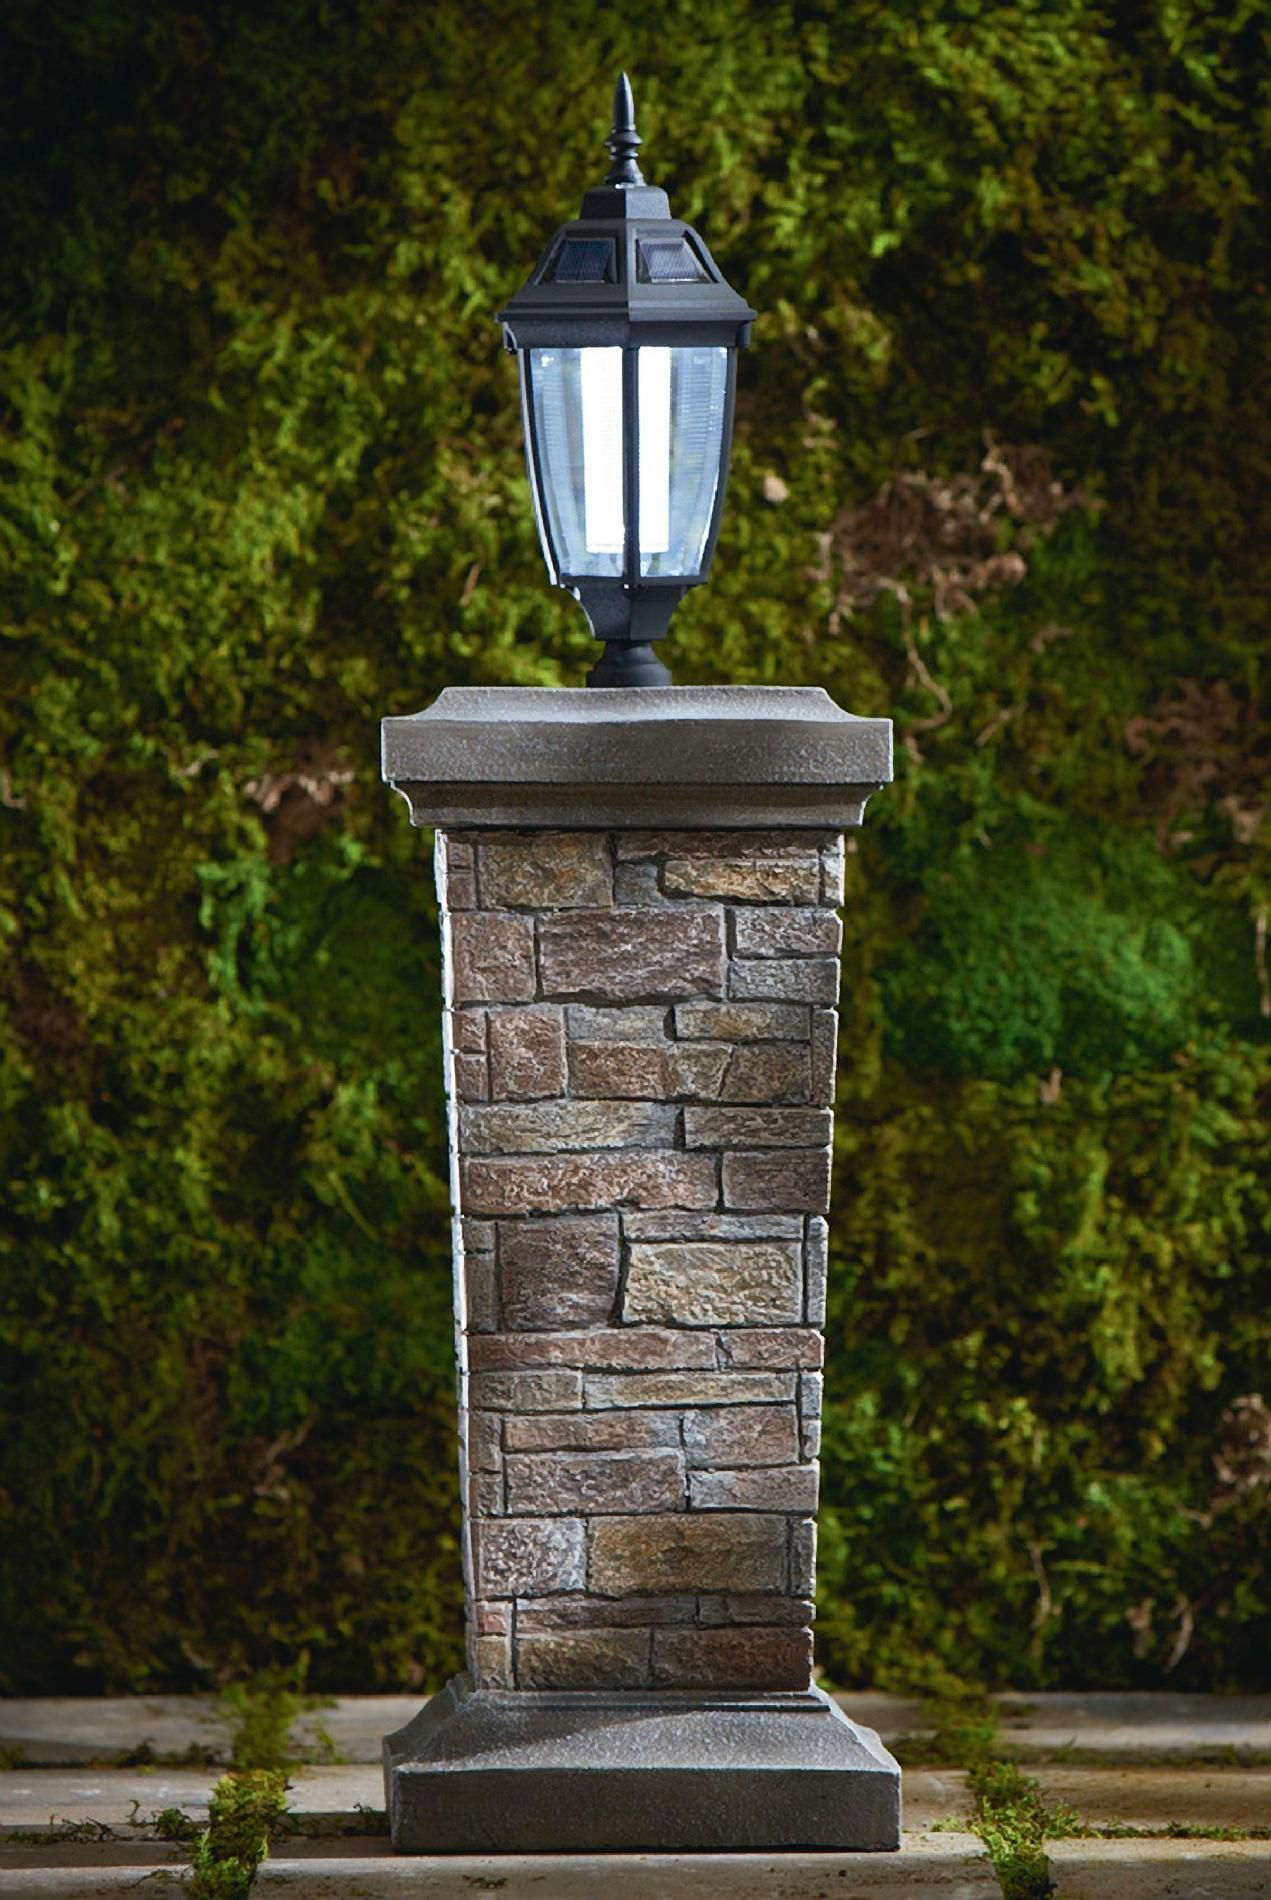 Pedestal With Solar Lantern Impressive Outdoor Light From Sears